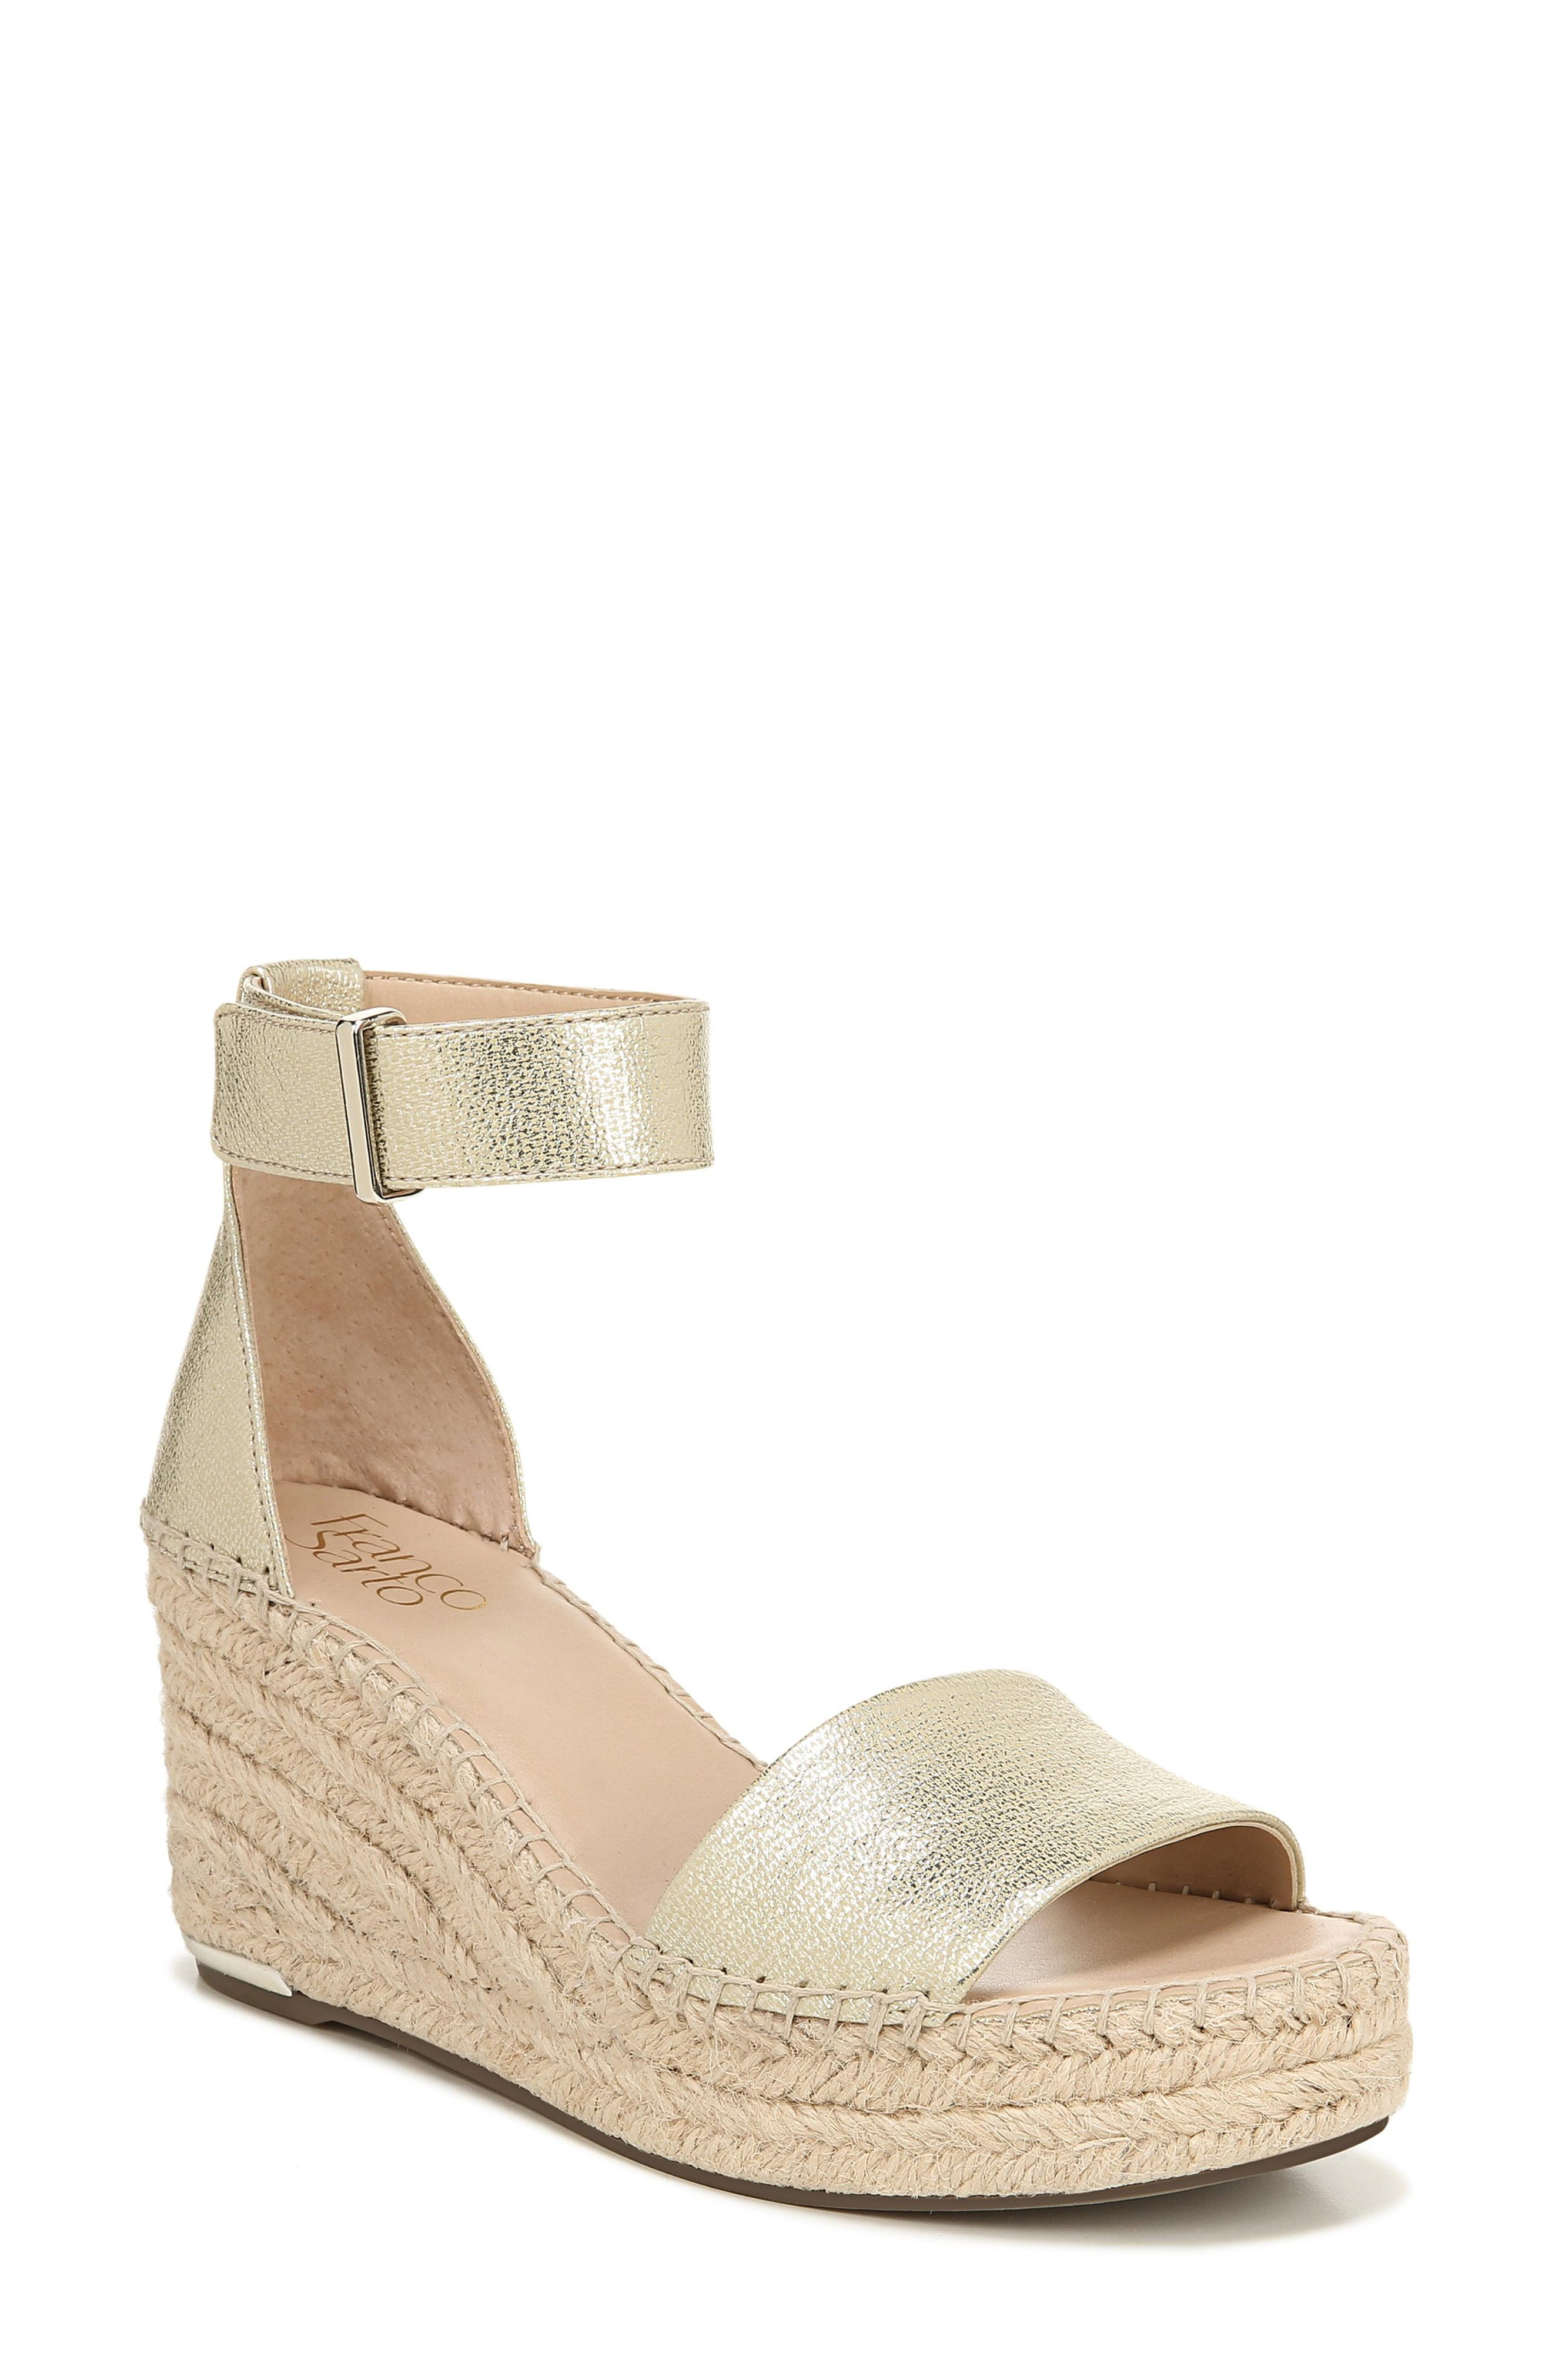 851b574bdb7e Lyst - Franco Sarto Clemens Wedge Sandals in Metallic - Save 1%